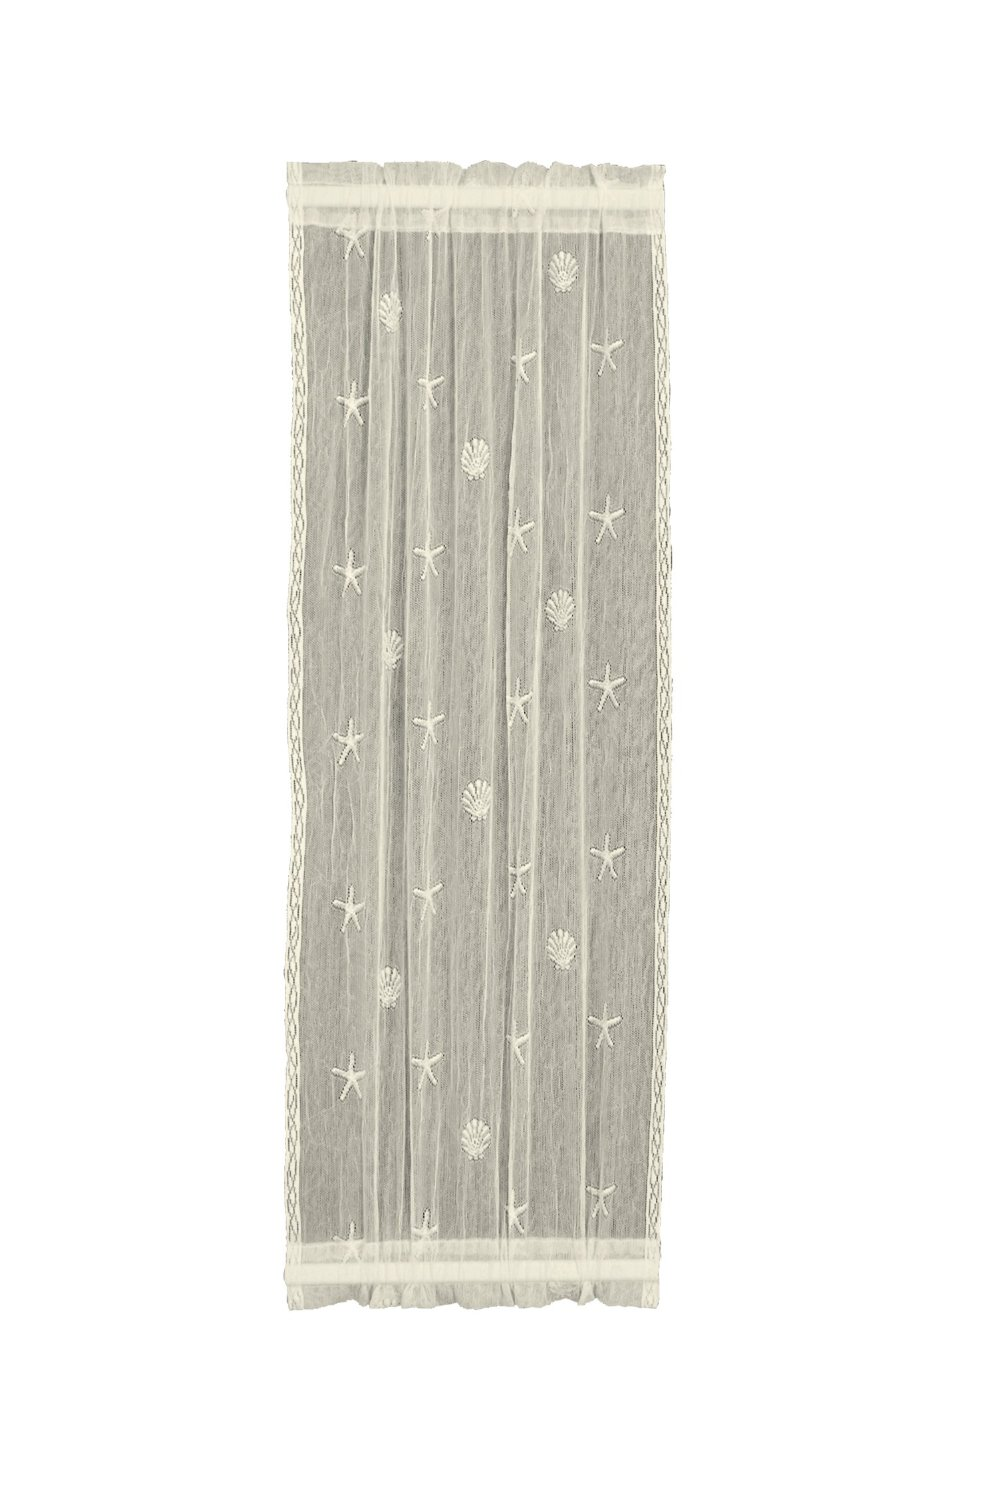 Sand Shell 15 63 Sidelight Panel Heritage Lace 7175e 1563sl 7175w 1563sl Lace Curtain Store